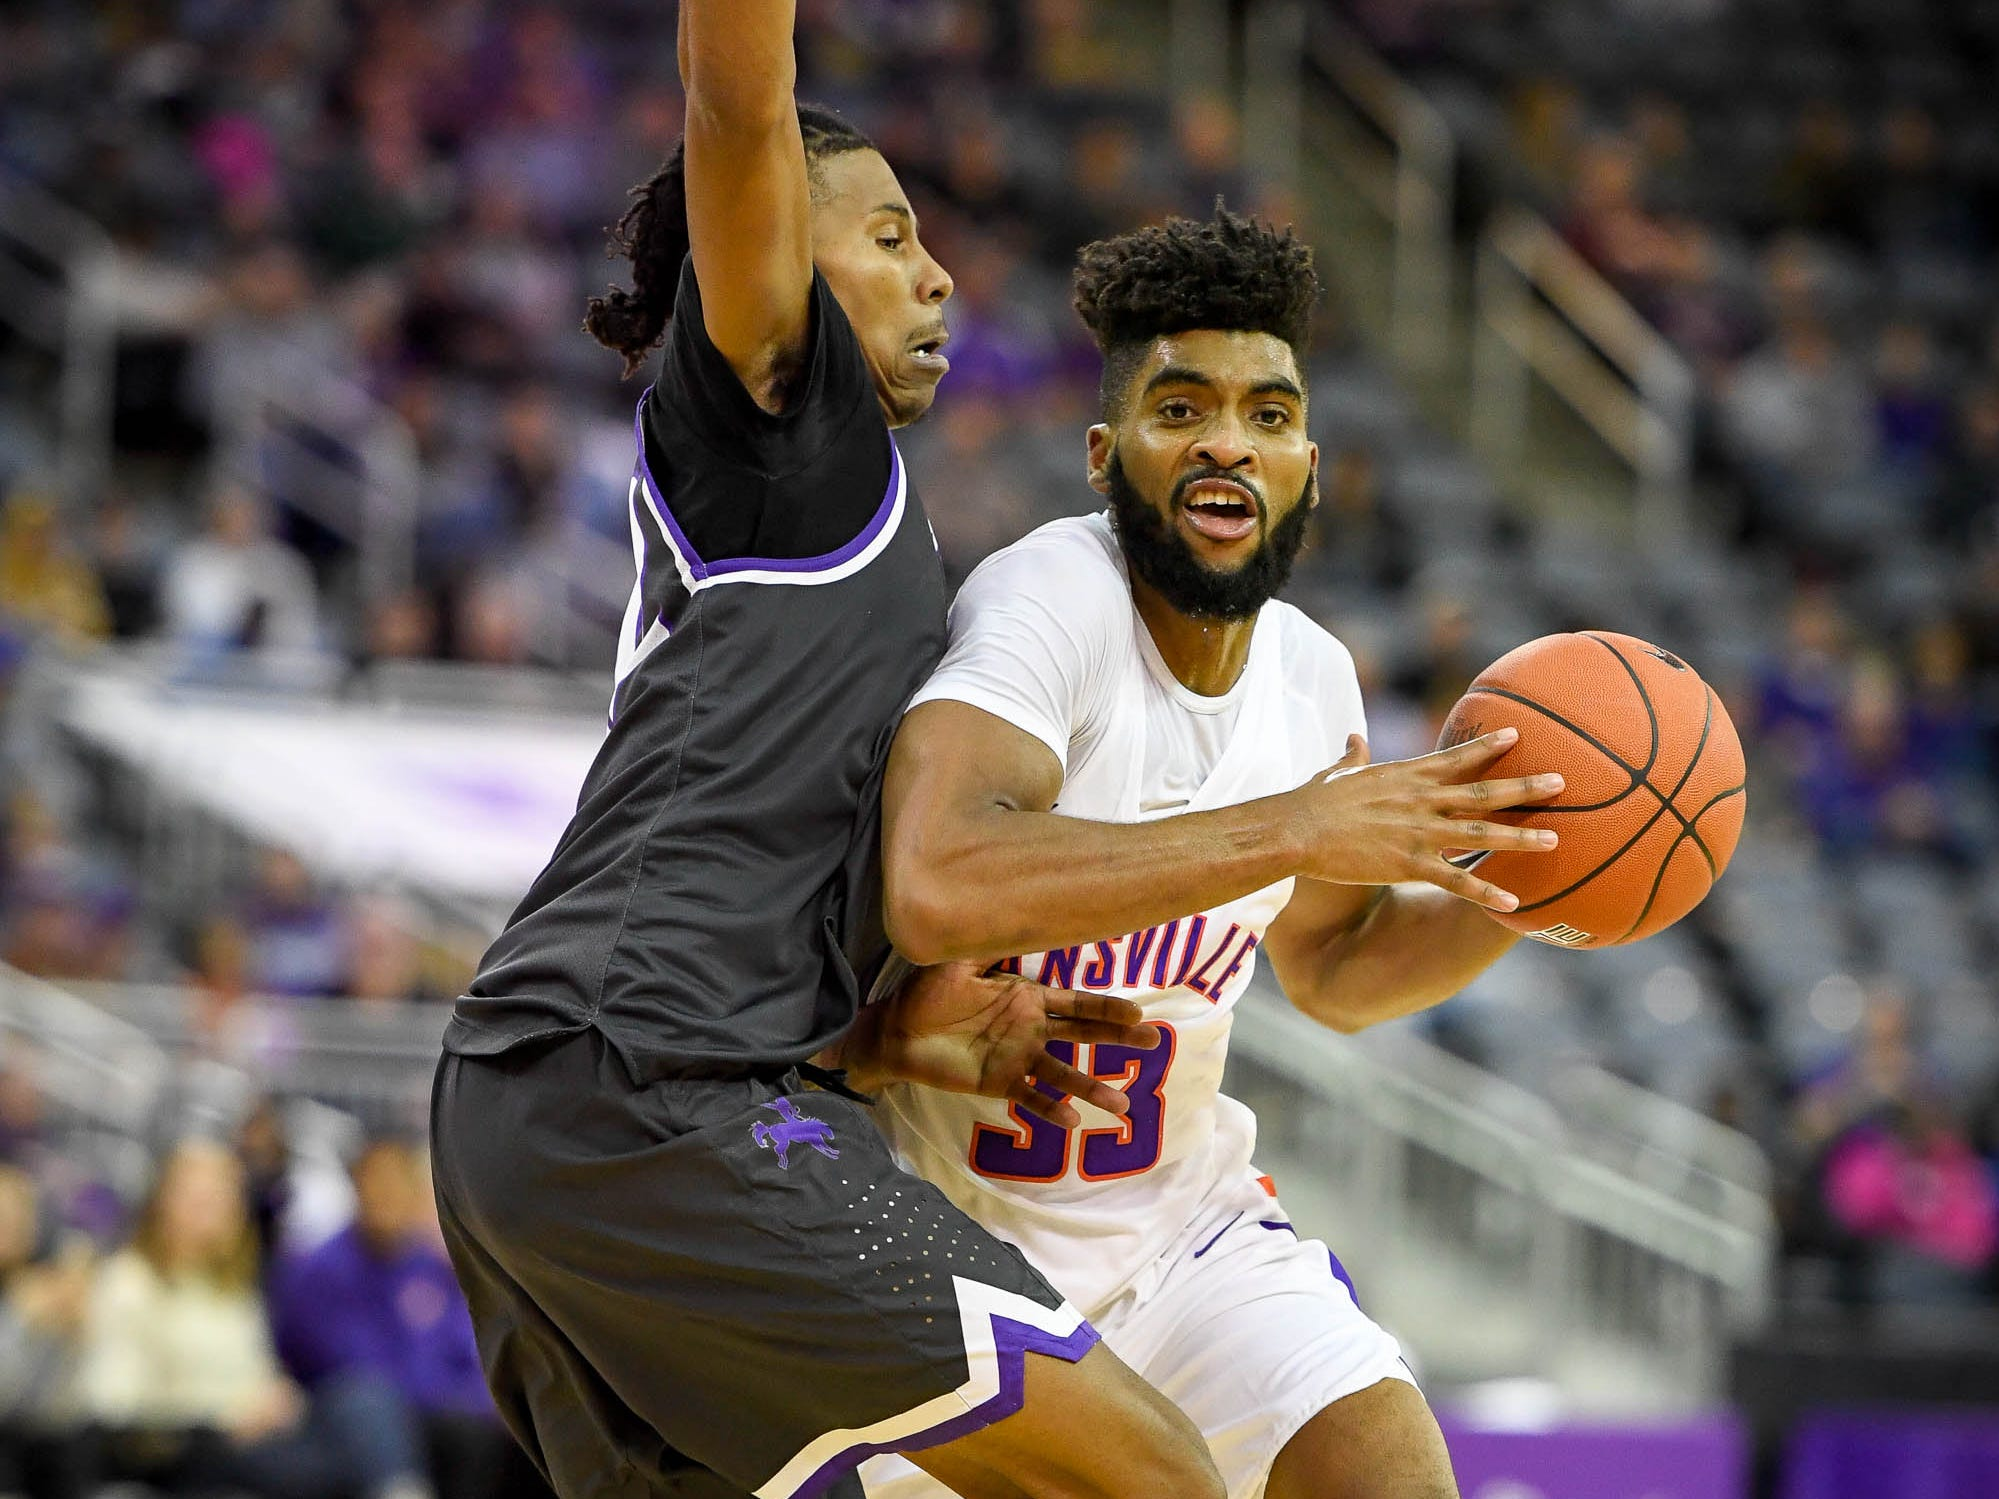 University of Evansville's K.J. Riley (33) drives against New Mexico Highlands' Jeff Collier (22) as the University of Evansville Purple Aces play the New Mexico Highlands Cowboys in a exhibition game at the Ford Center Saturday, November 3, 2018.